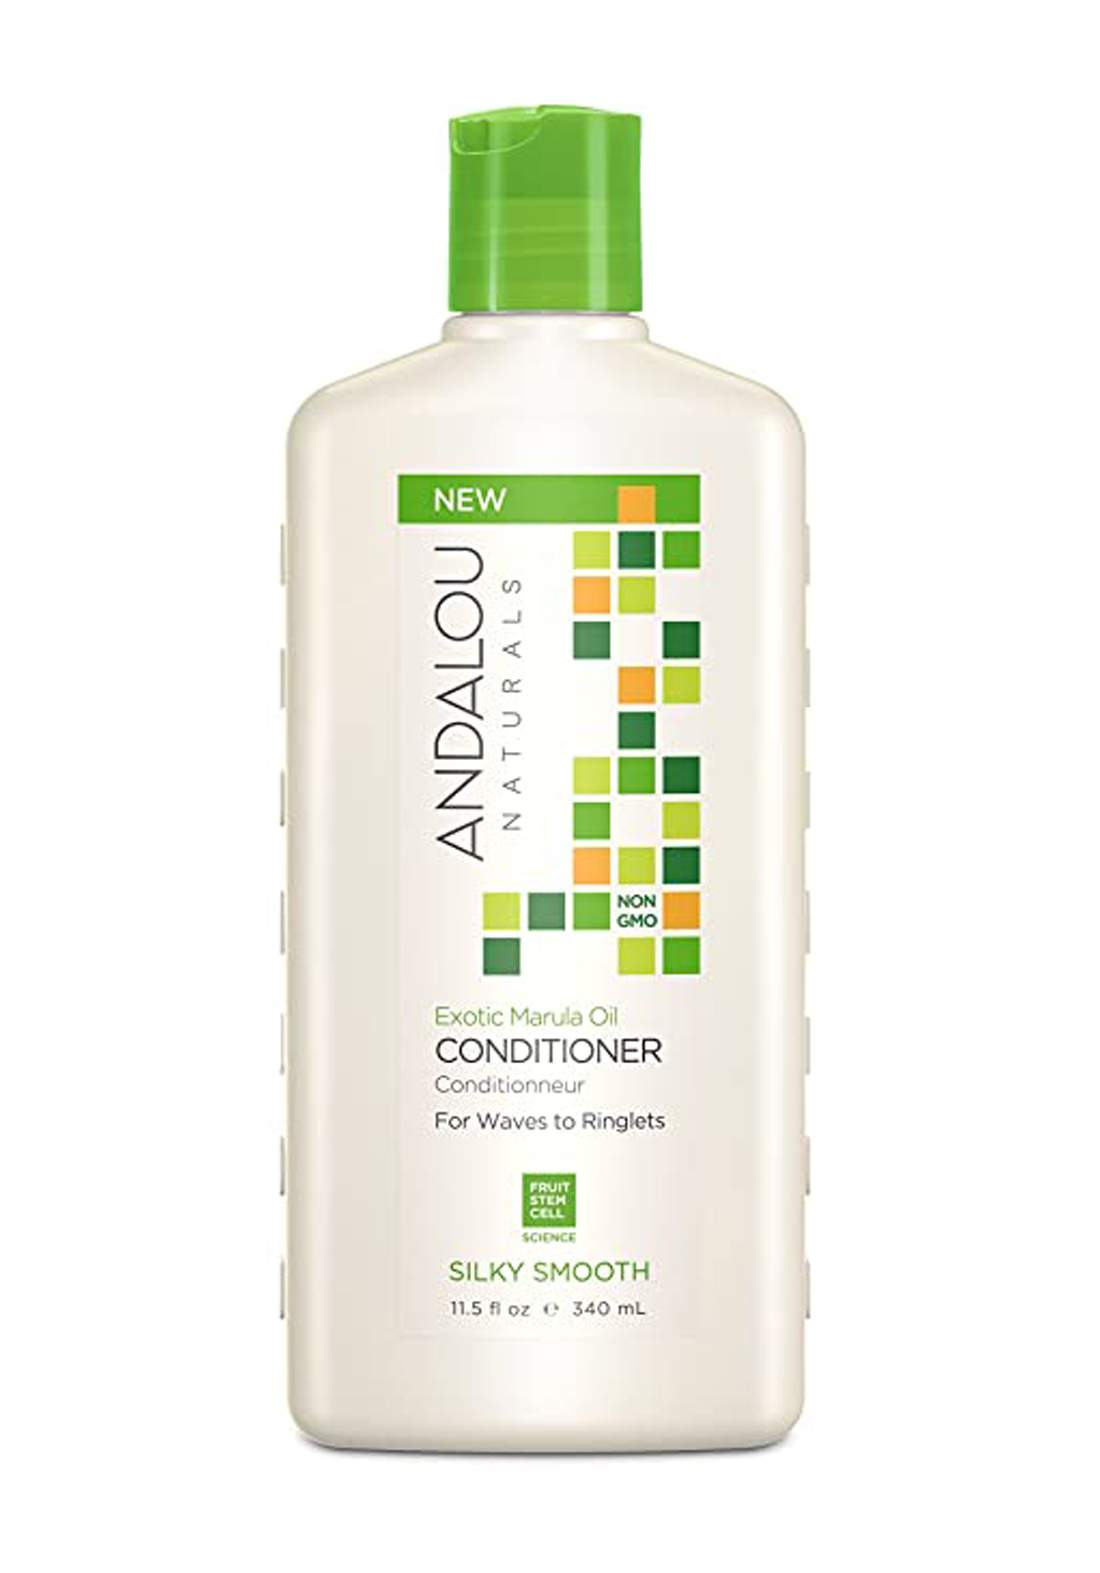 27124 Andalou Naturals Exotic Marula Oil Silky Smooth Conditioner 340ml بلسم للشعر